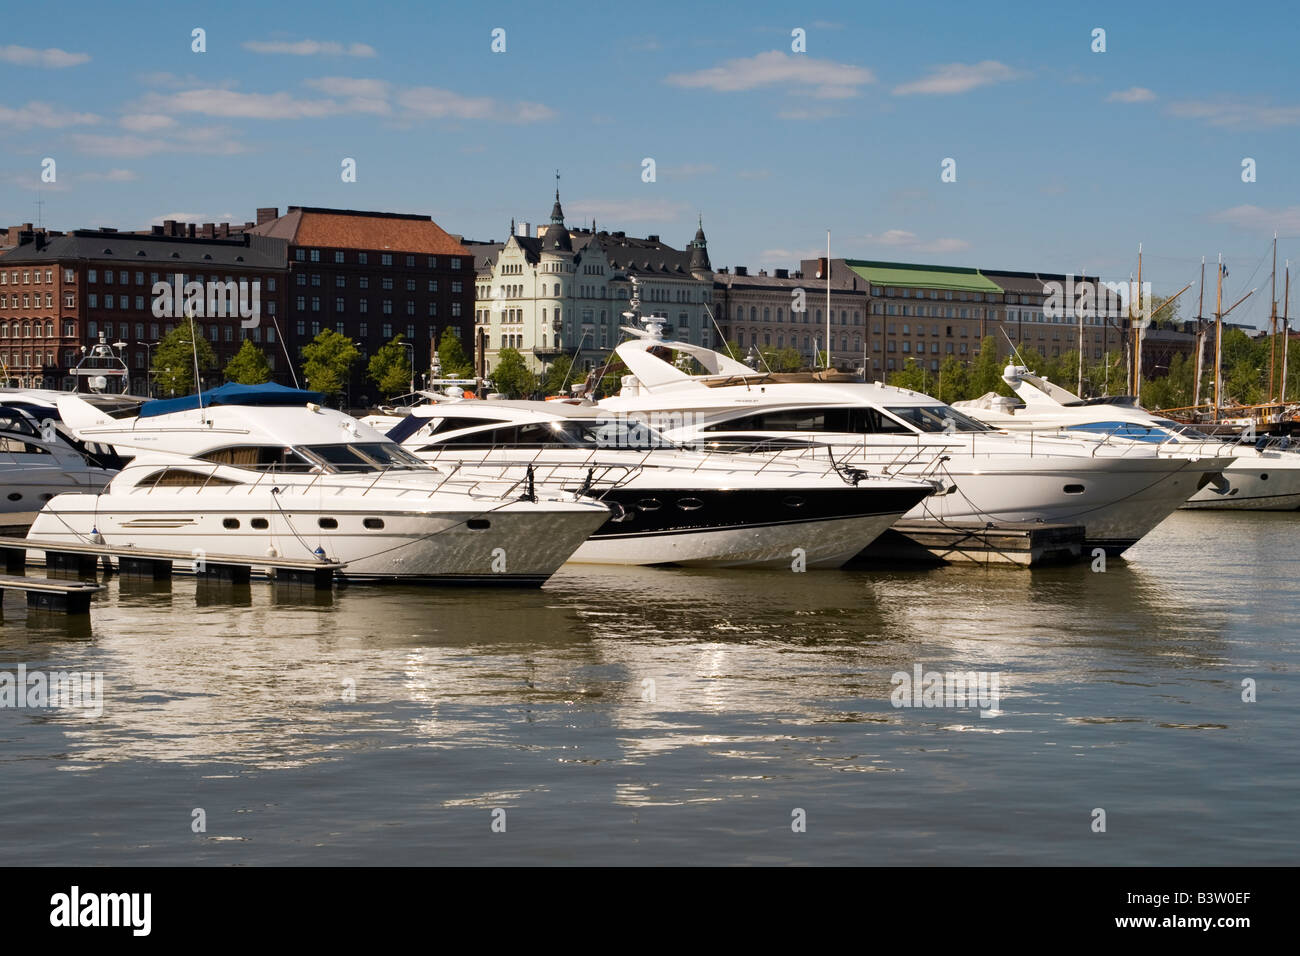 Speedboats berthed at marina in Helsinki North harbour, Finland - Stock Image